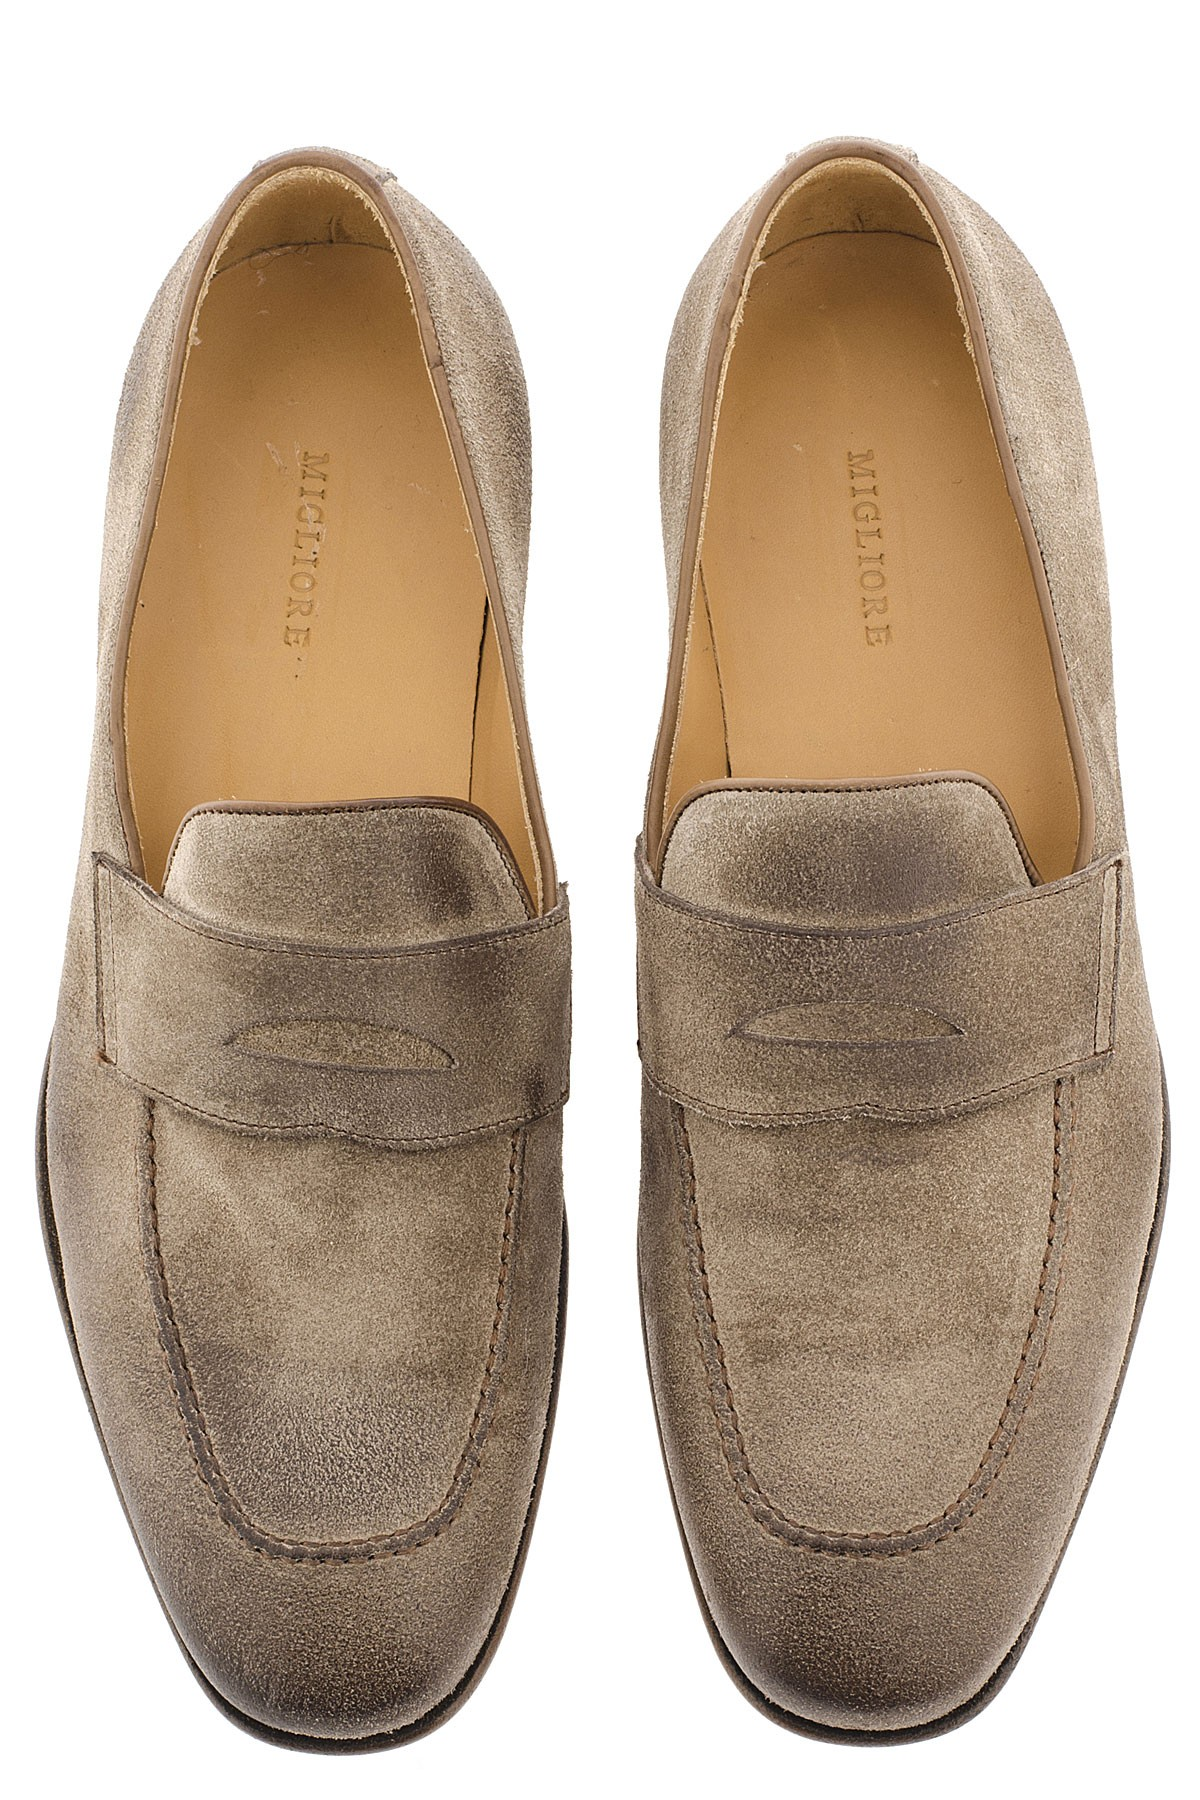 adatto a uomini/donne outlet stile moderno MIGLIORE Taupe beige shoes for man S/S 16 - Rione Fontana